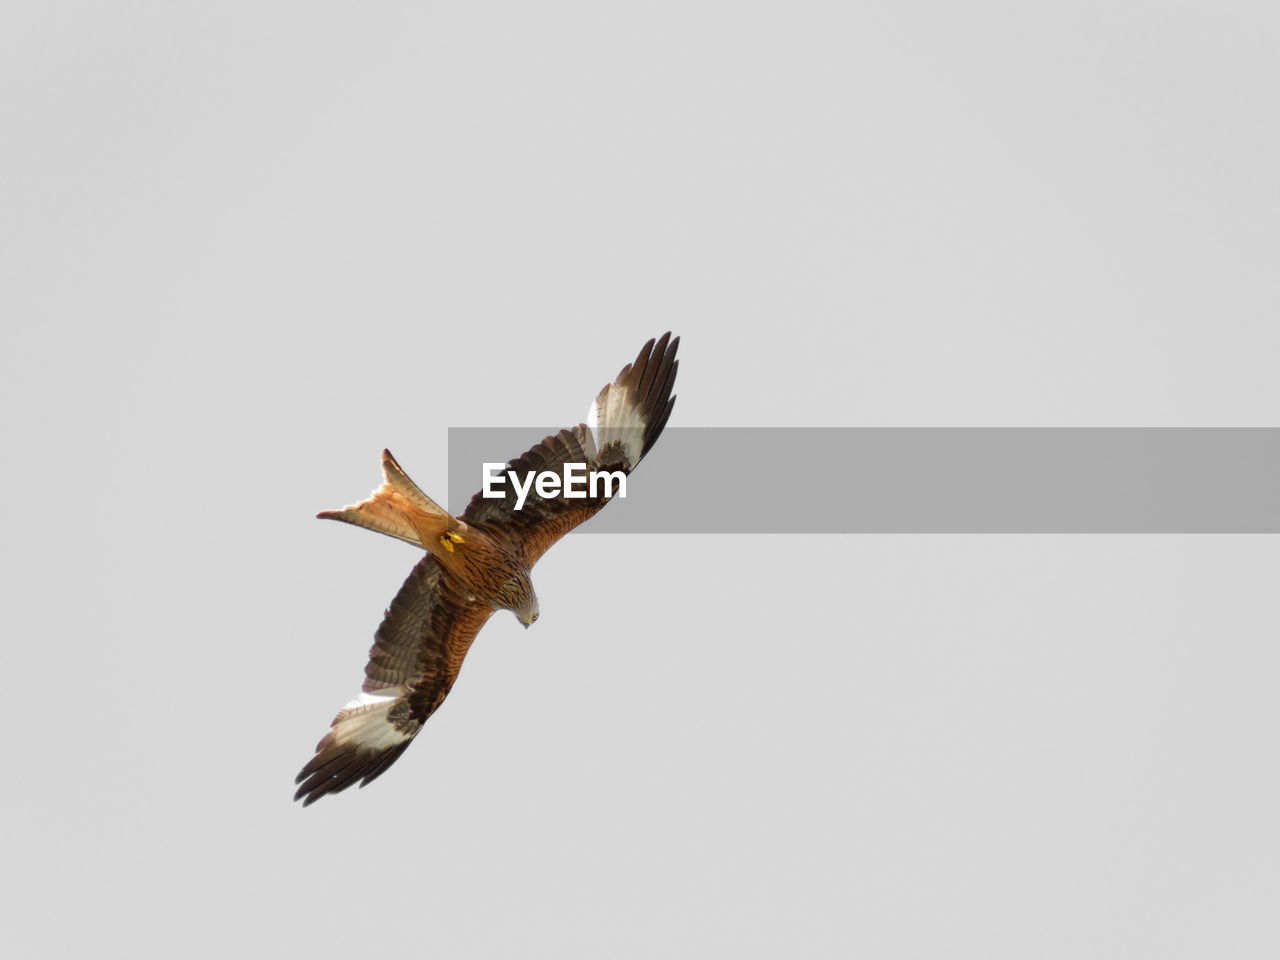 flying, animals in the wild, animal wildlife, bird, animal, animal themes, vertebrate, spread wings, copy space, one animal, clear sky, sky, bird of prey, mid-air, no people, low angle view, motion, nature, beauty in nature, outdoors, eagle